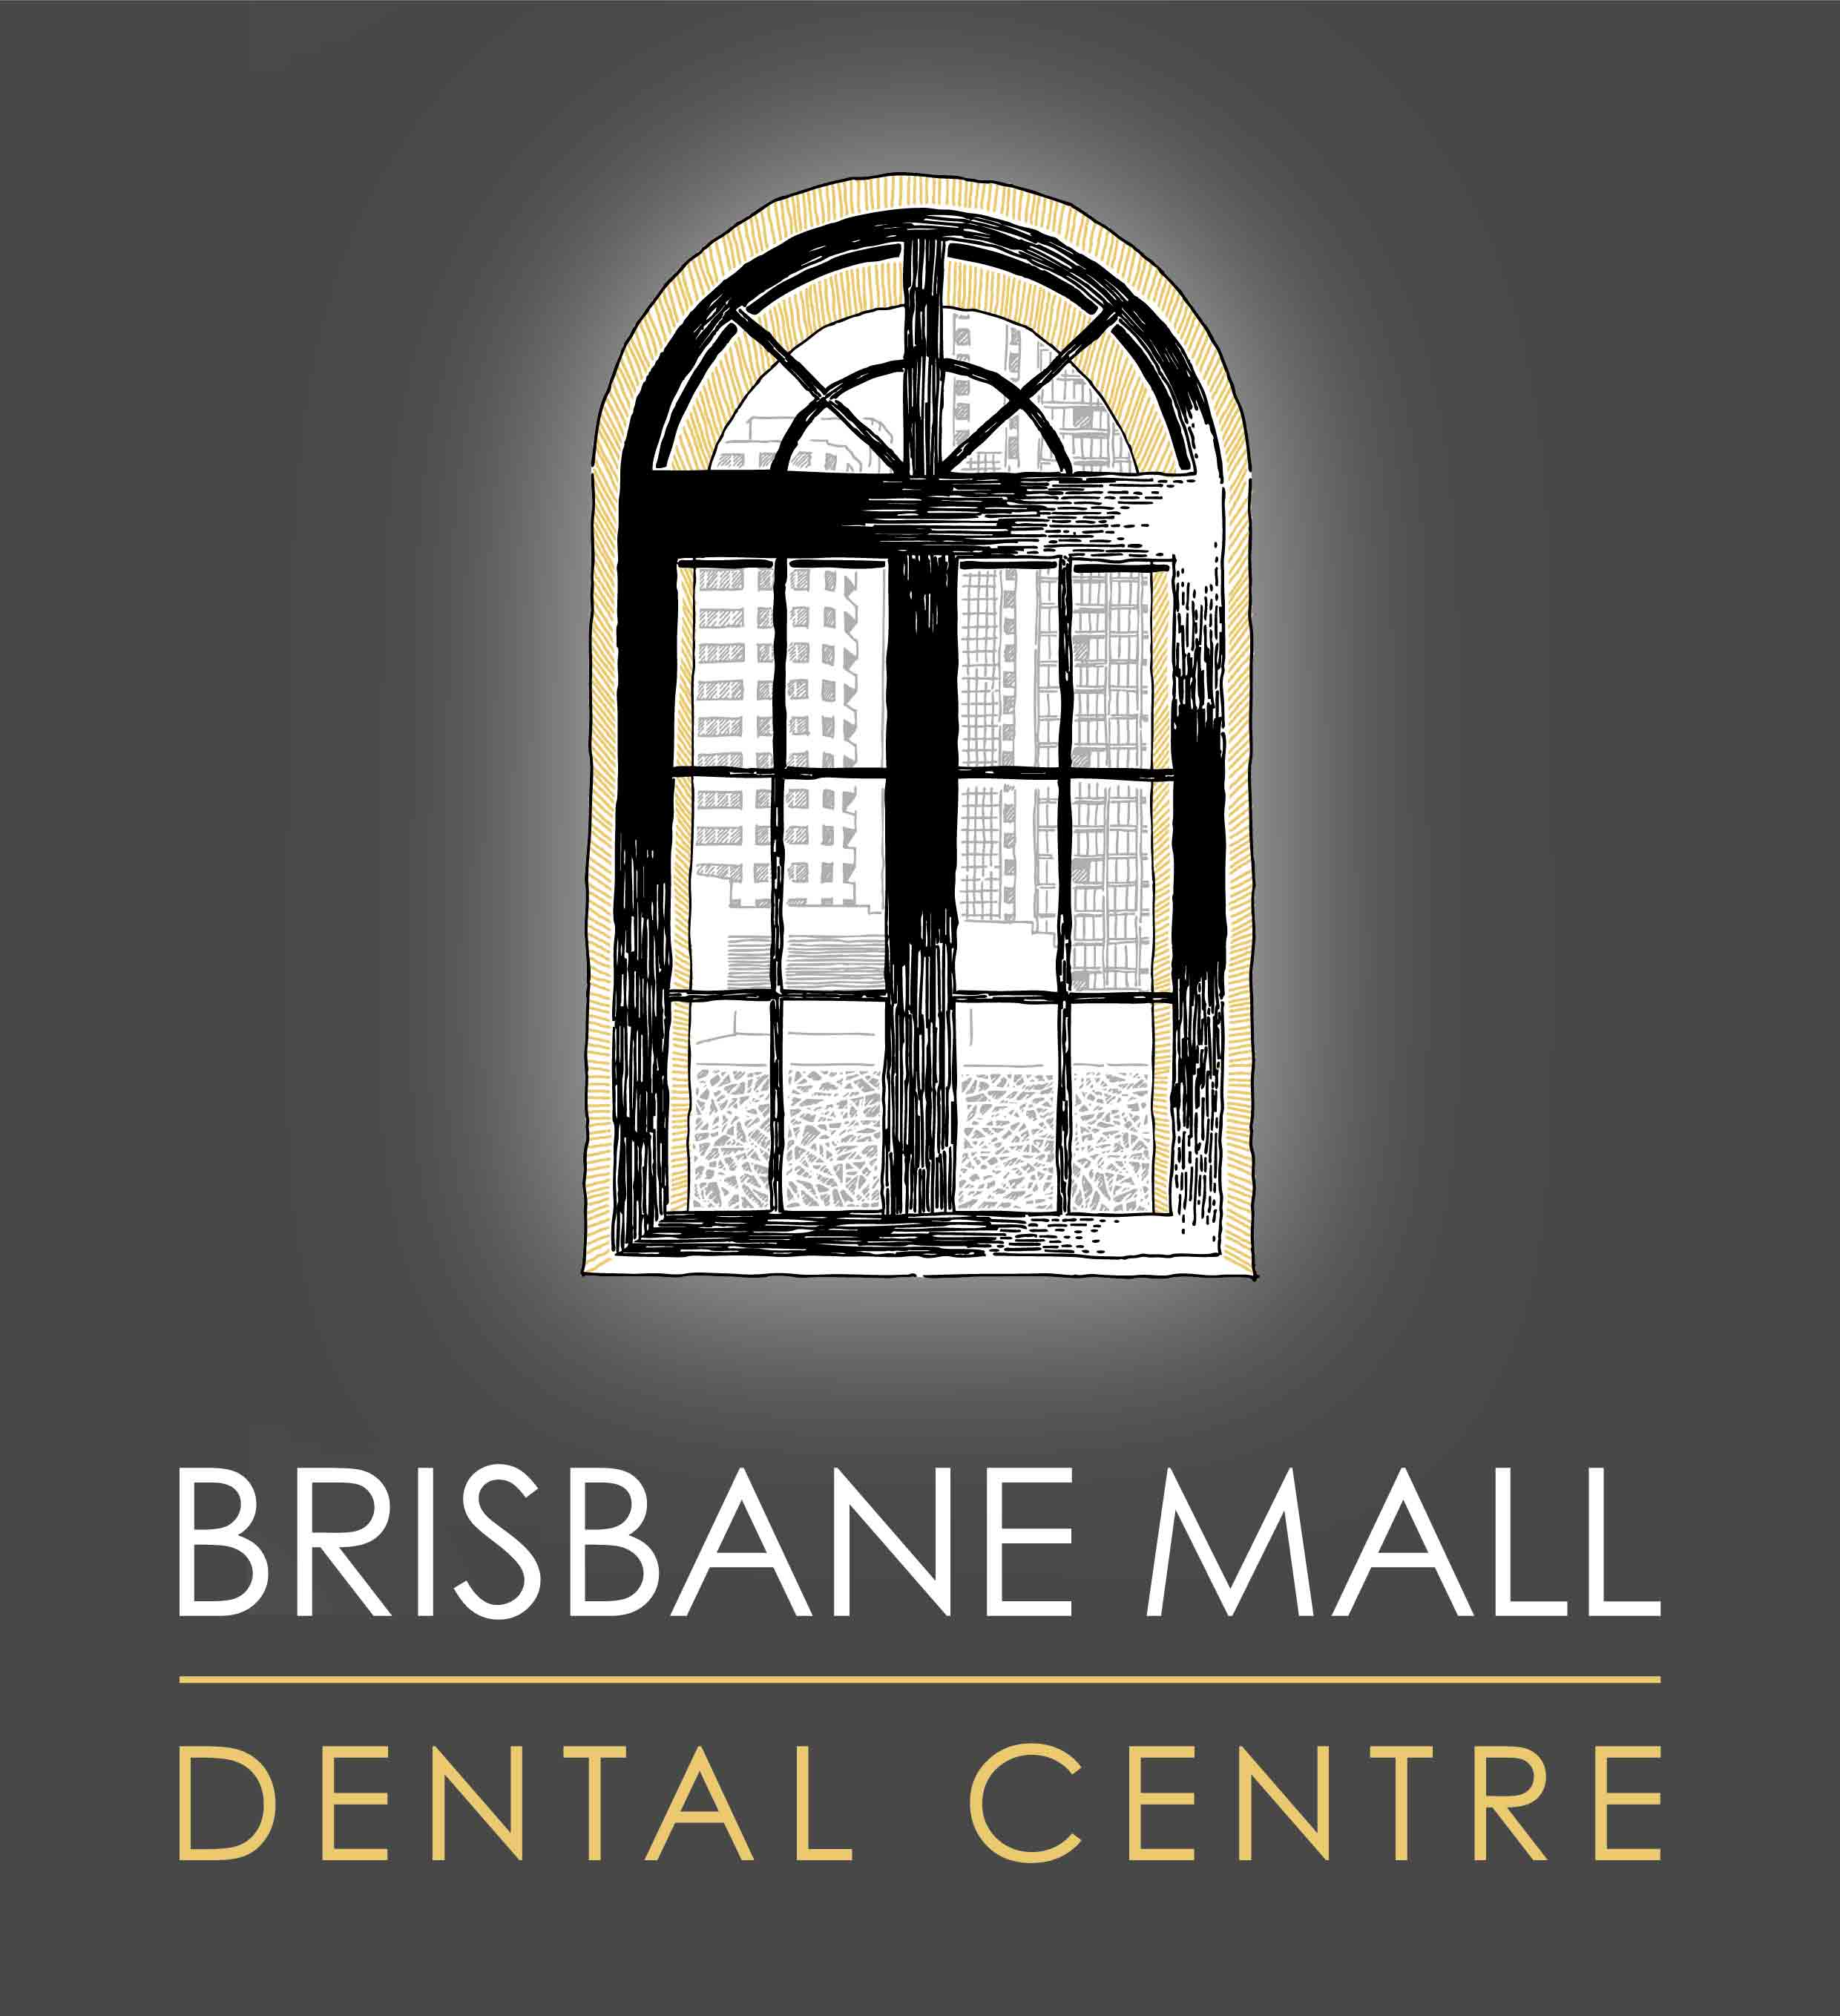 Brisbane Mall Dental Centre